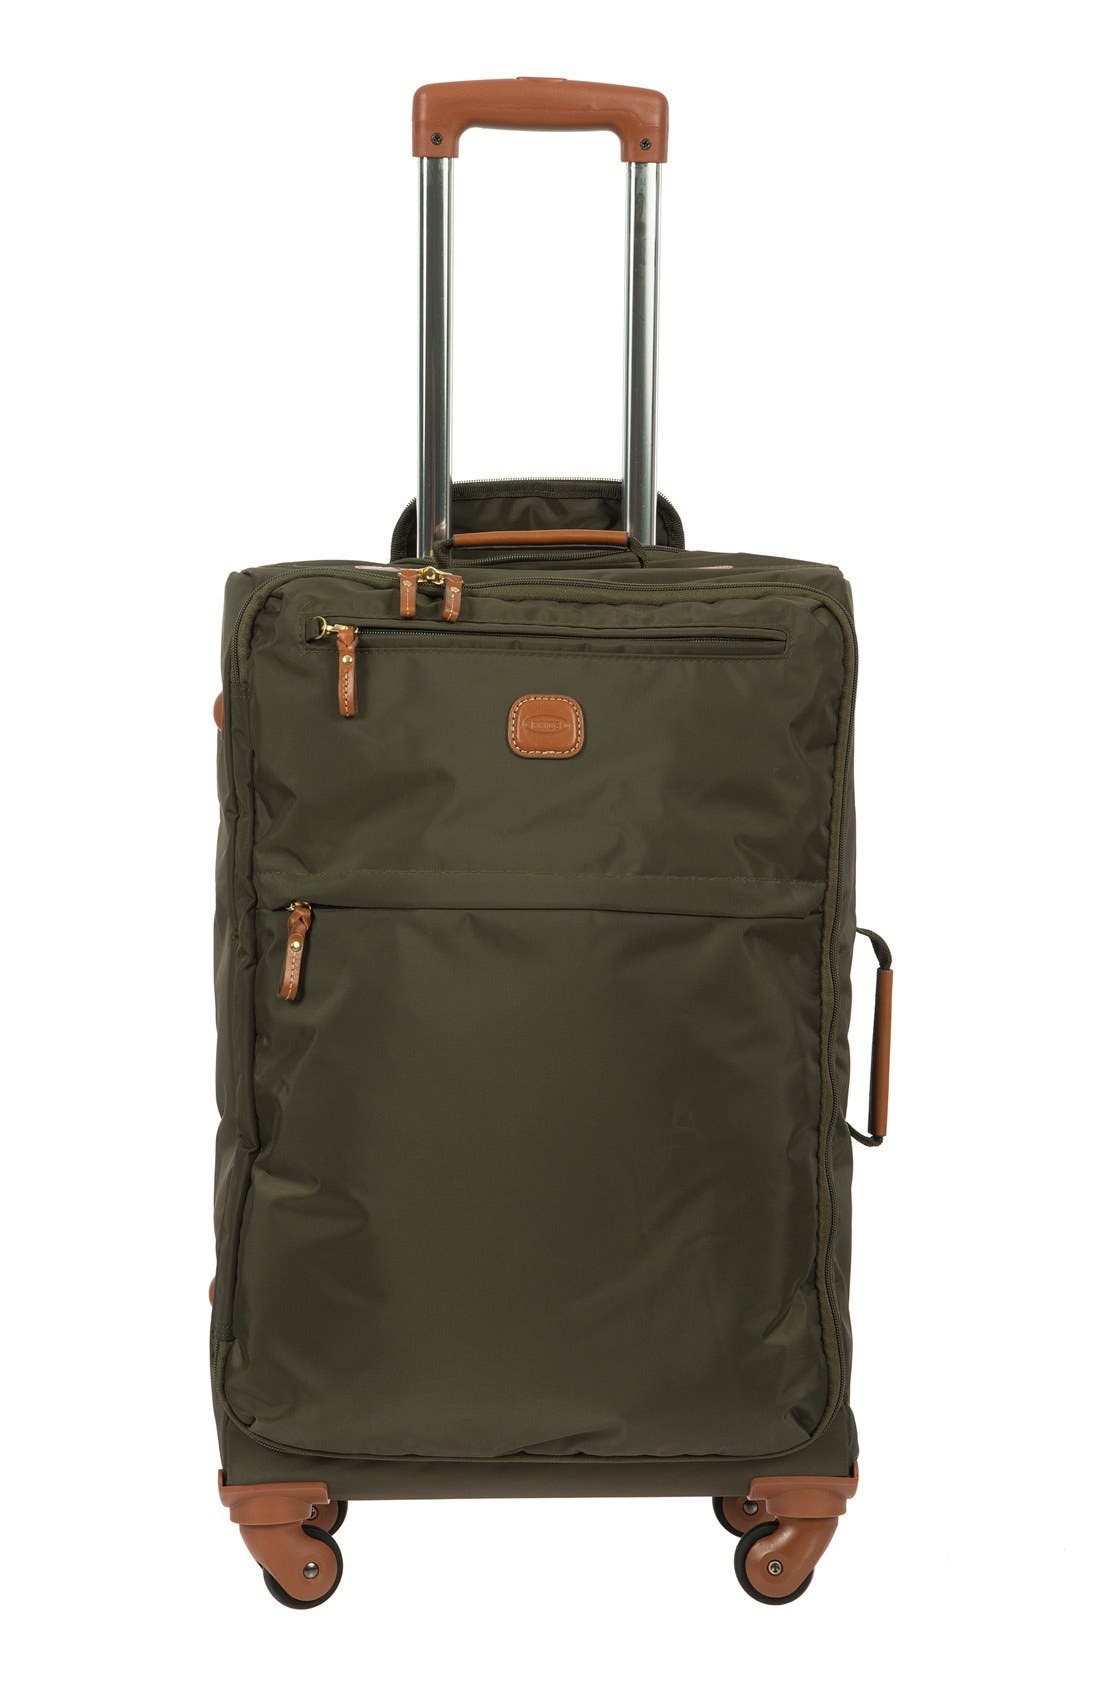 BRICS X-Bag 25 Inch Spinner Suitcase